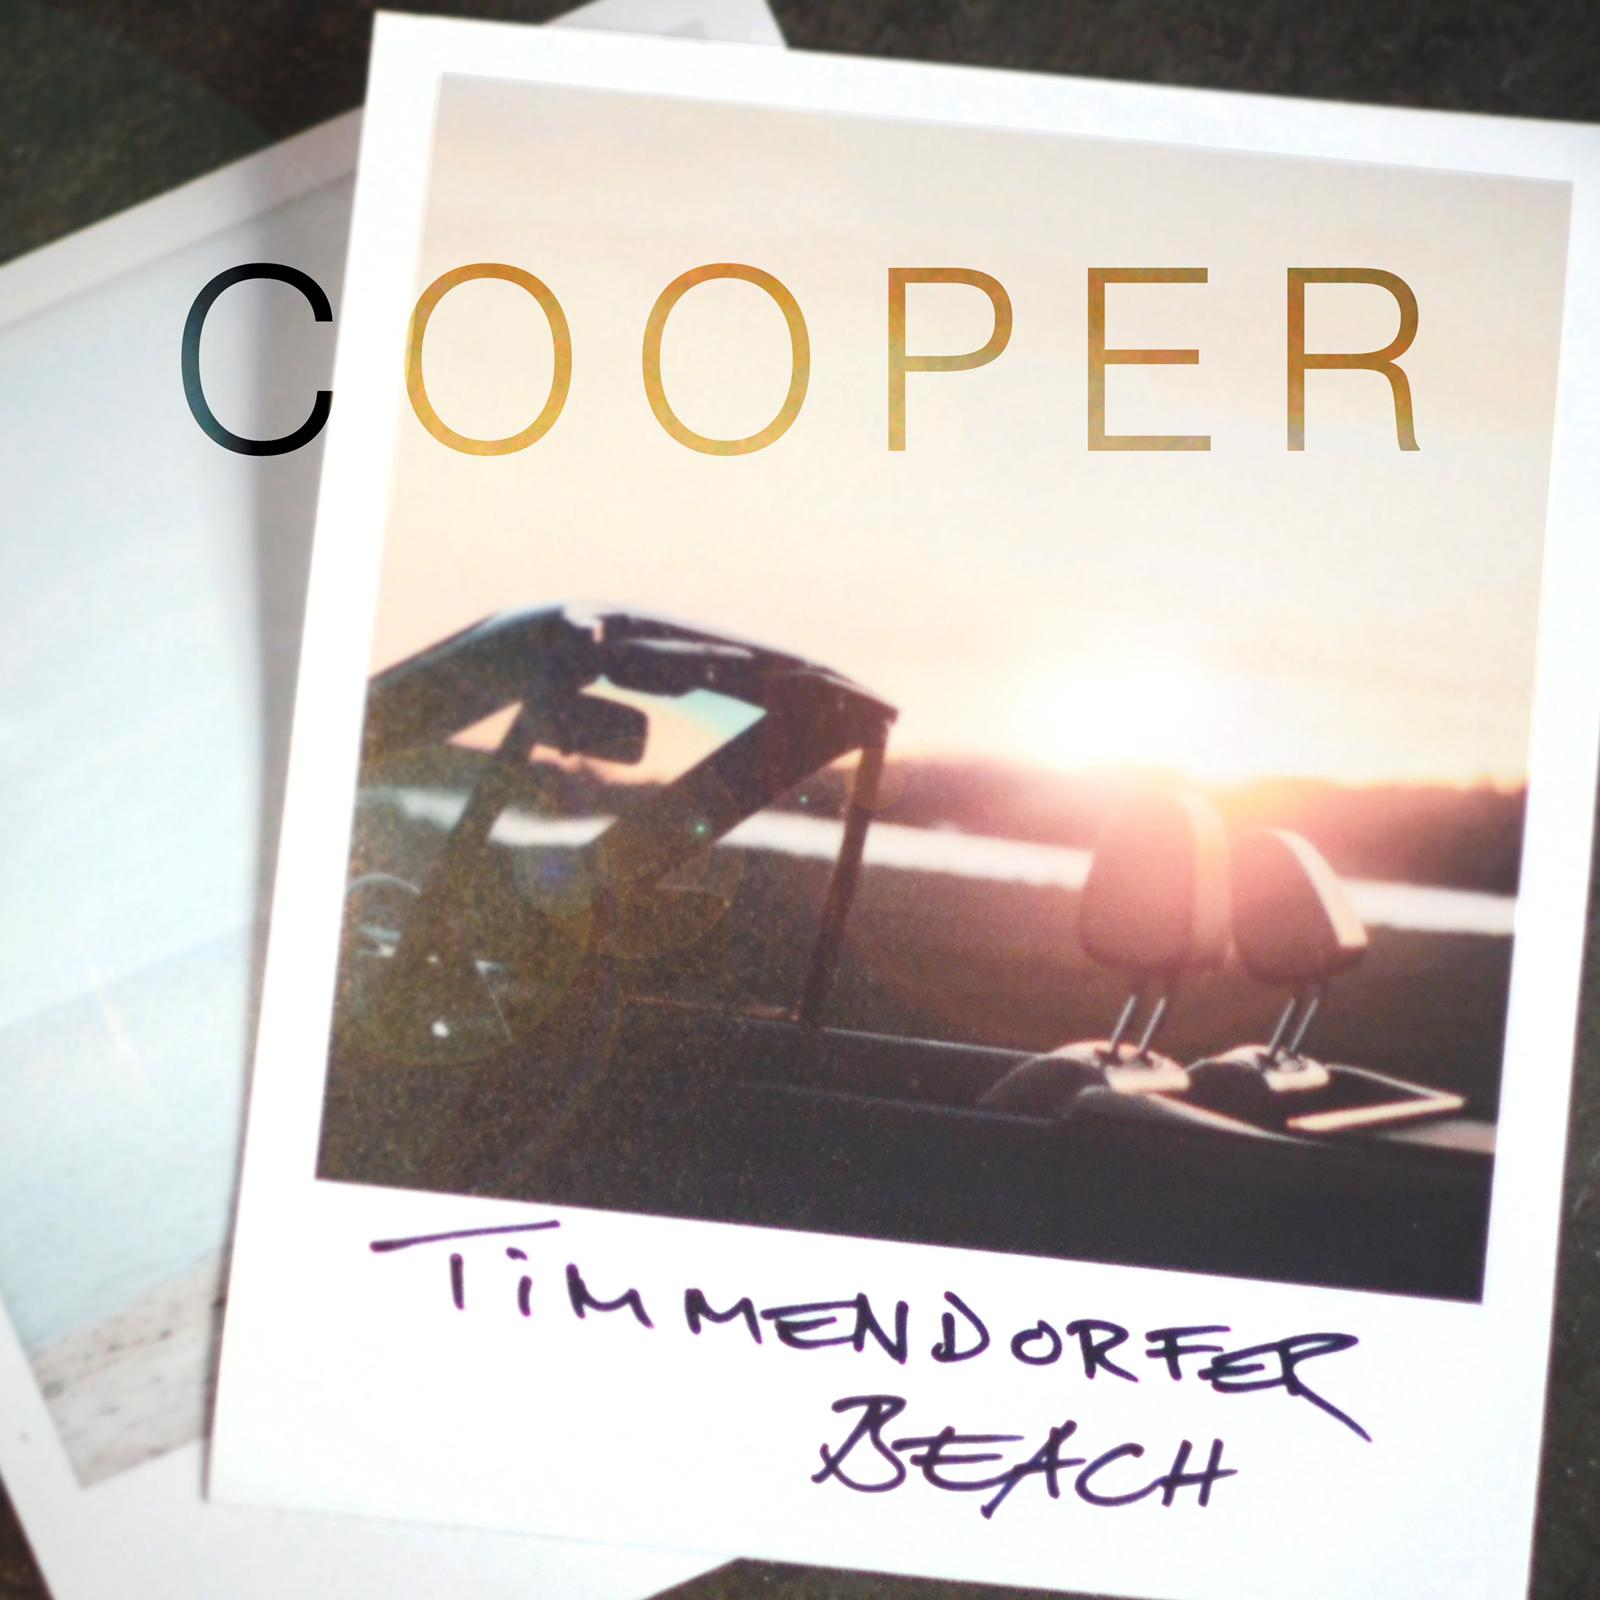 Upcoming: Cooper - Timmendorfer Beach